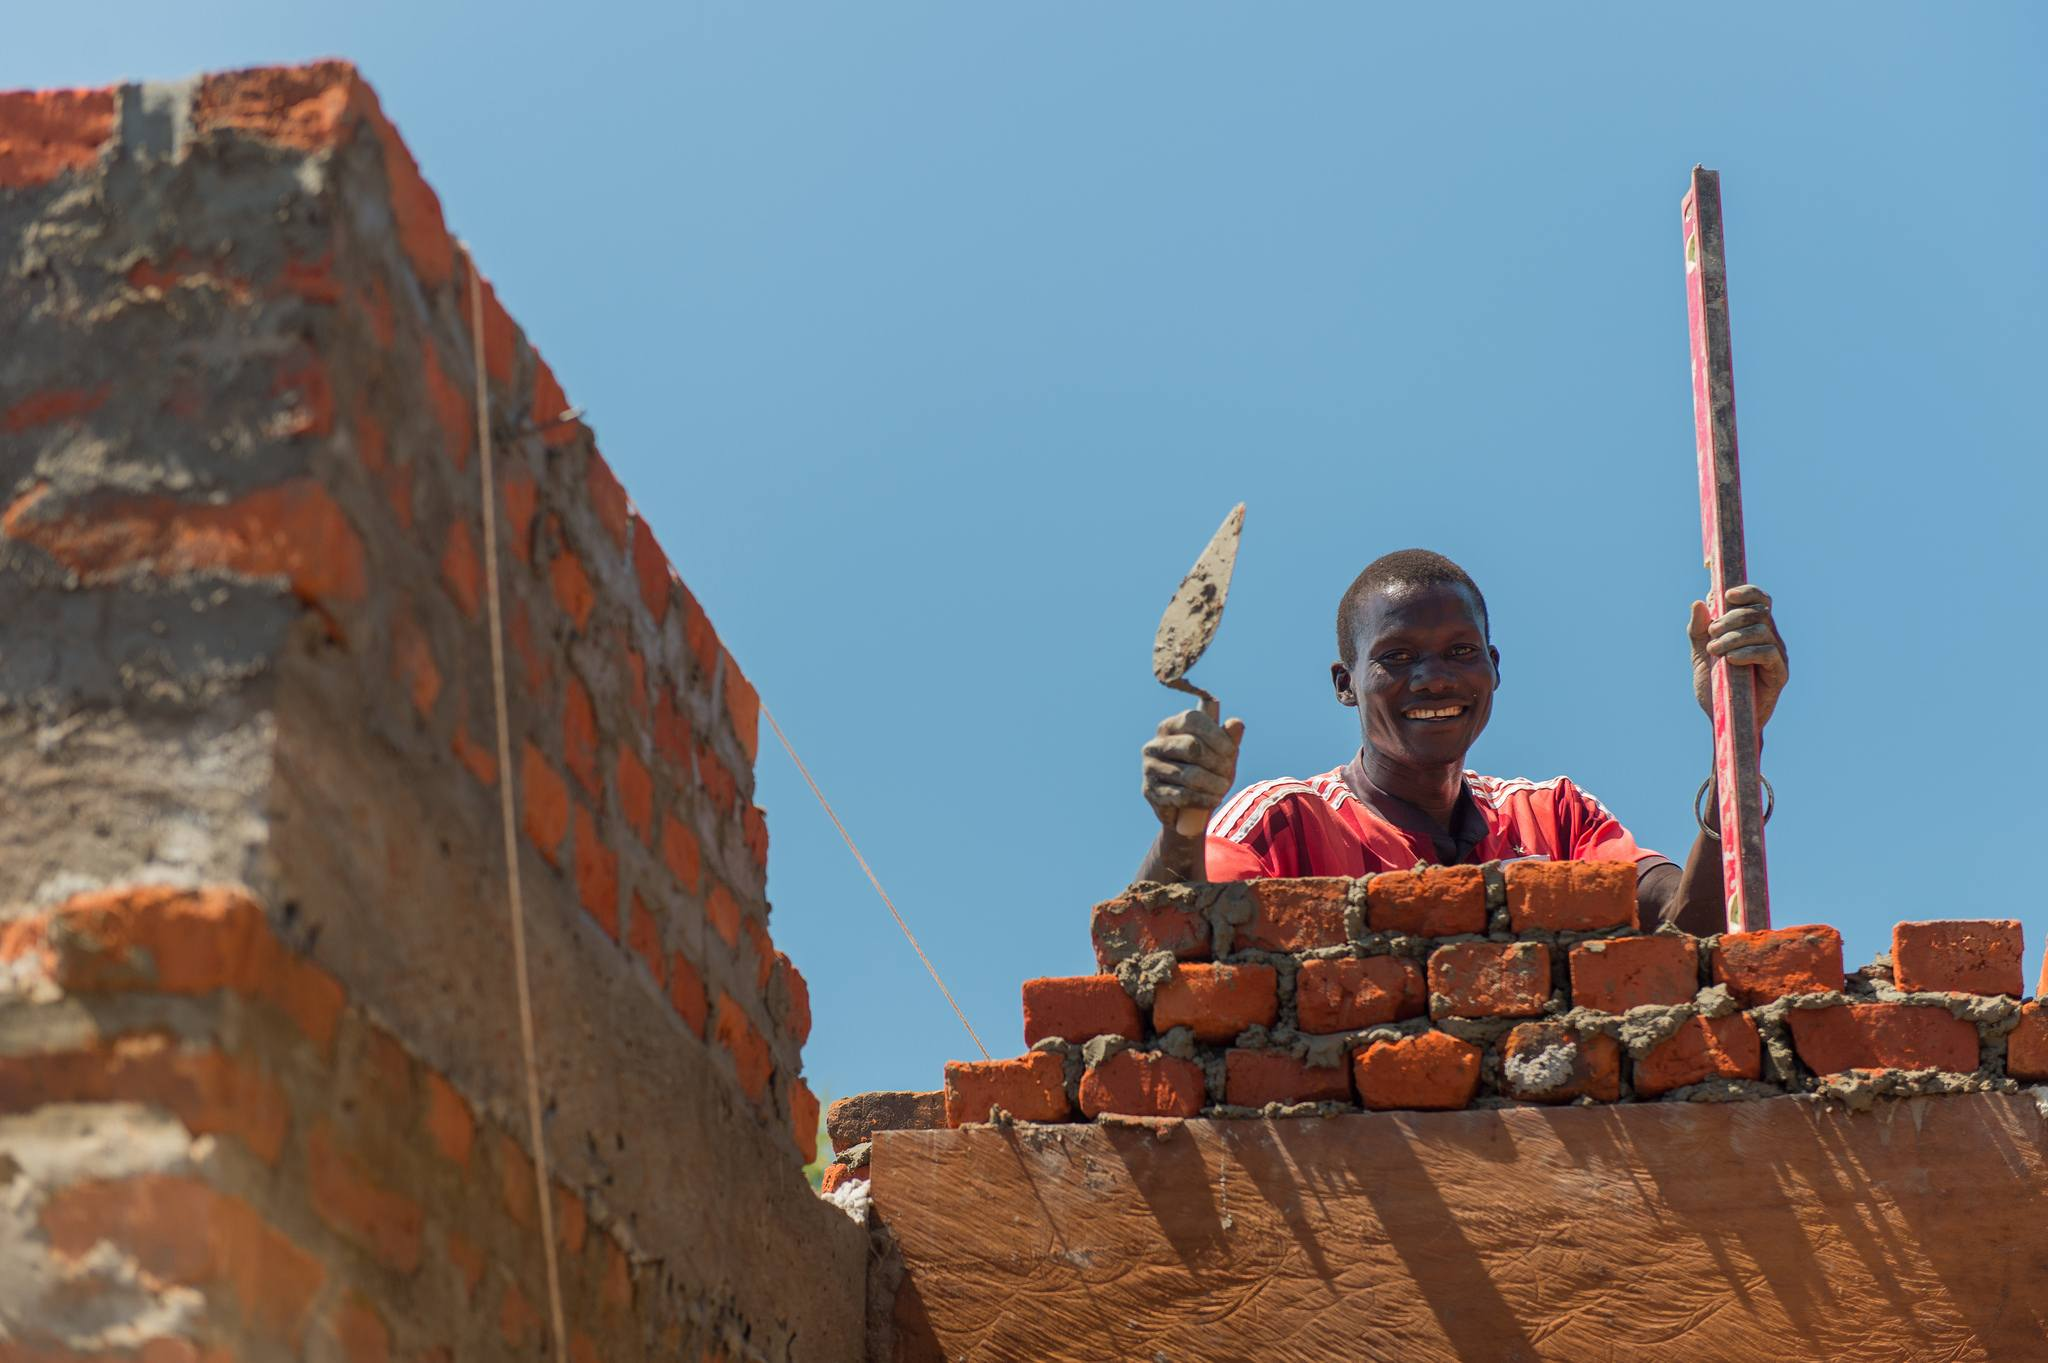 Hard work and many smiles have been put into construction at the site